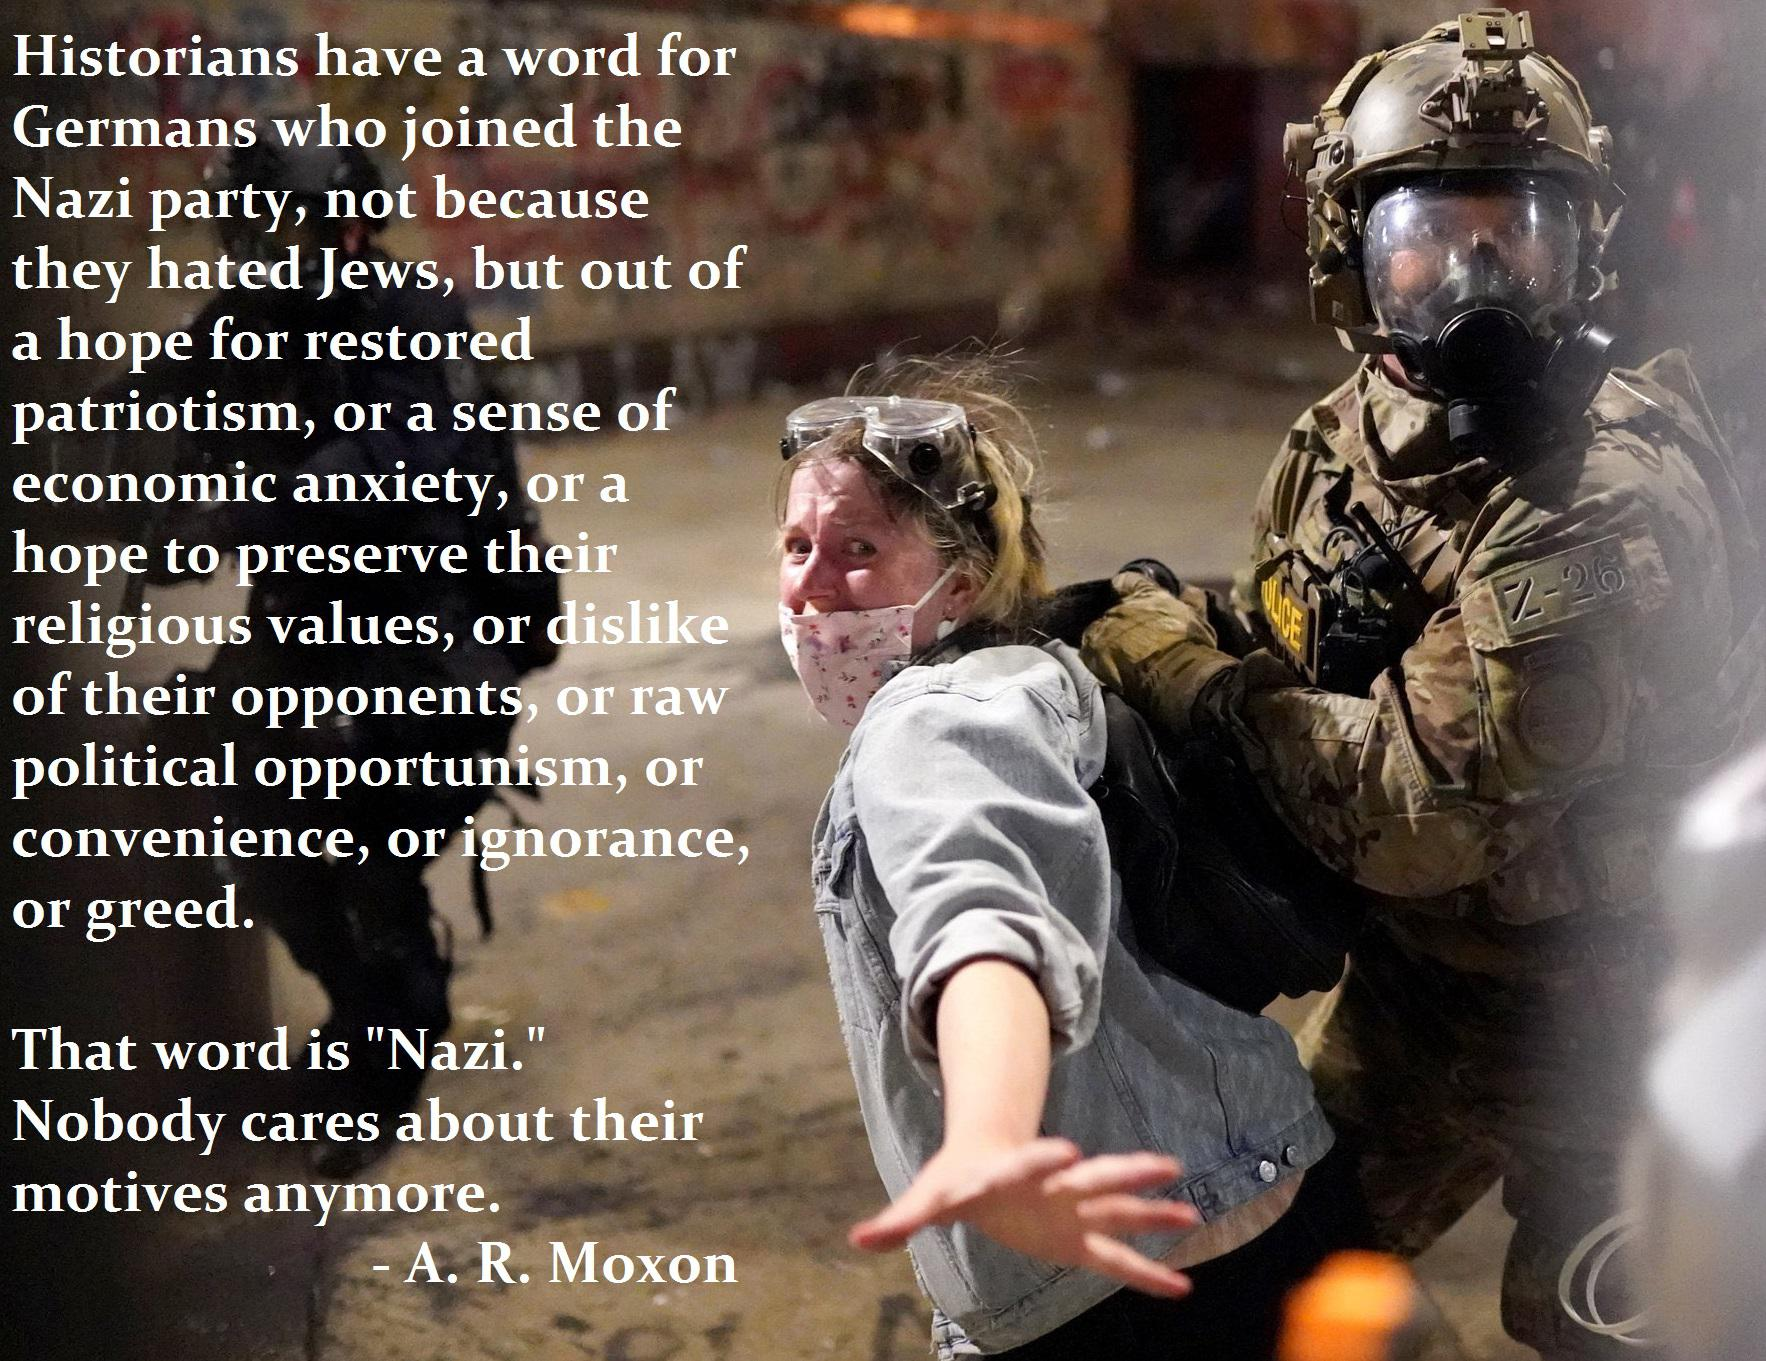 """That word is ""Nazi."" Nobody cares about their motives anymore."" – A. R. Moxon [1766×1361]"